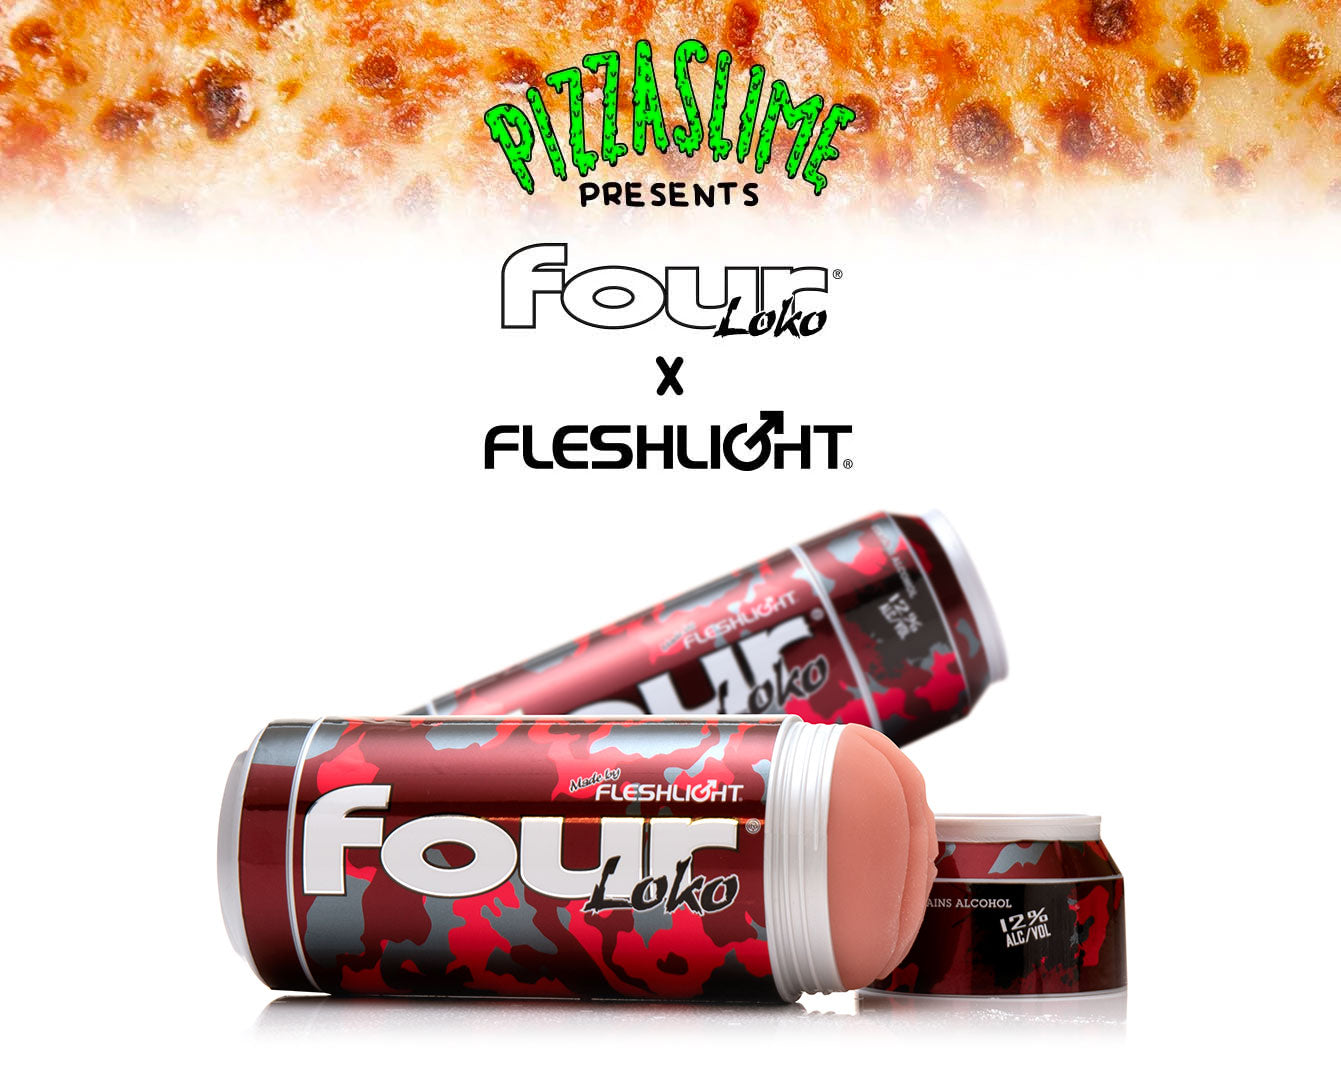 Four Loko Fleshlight